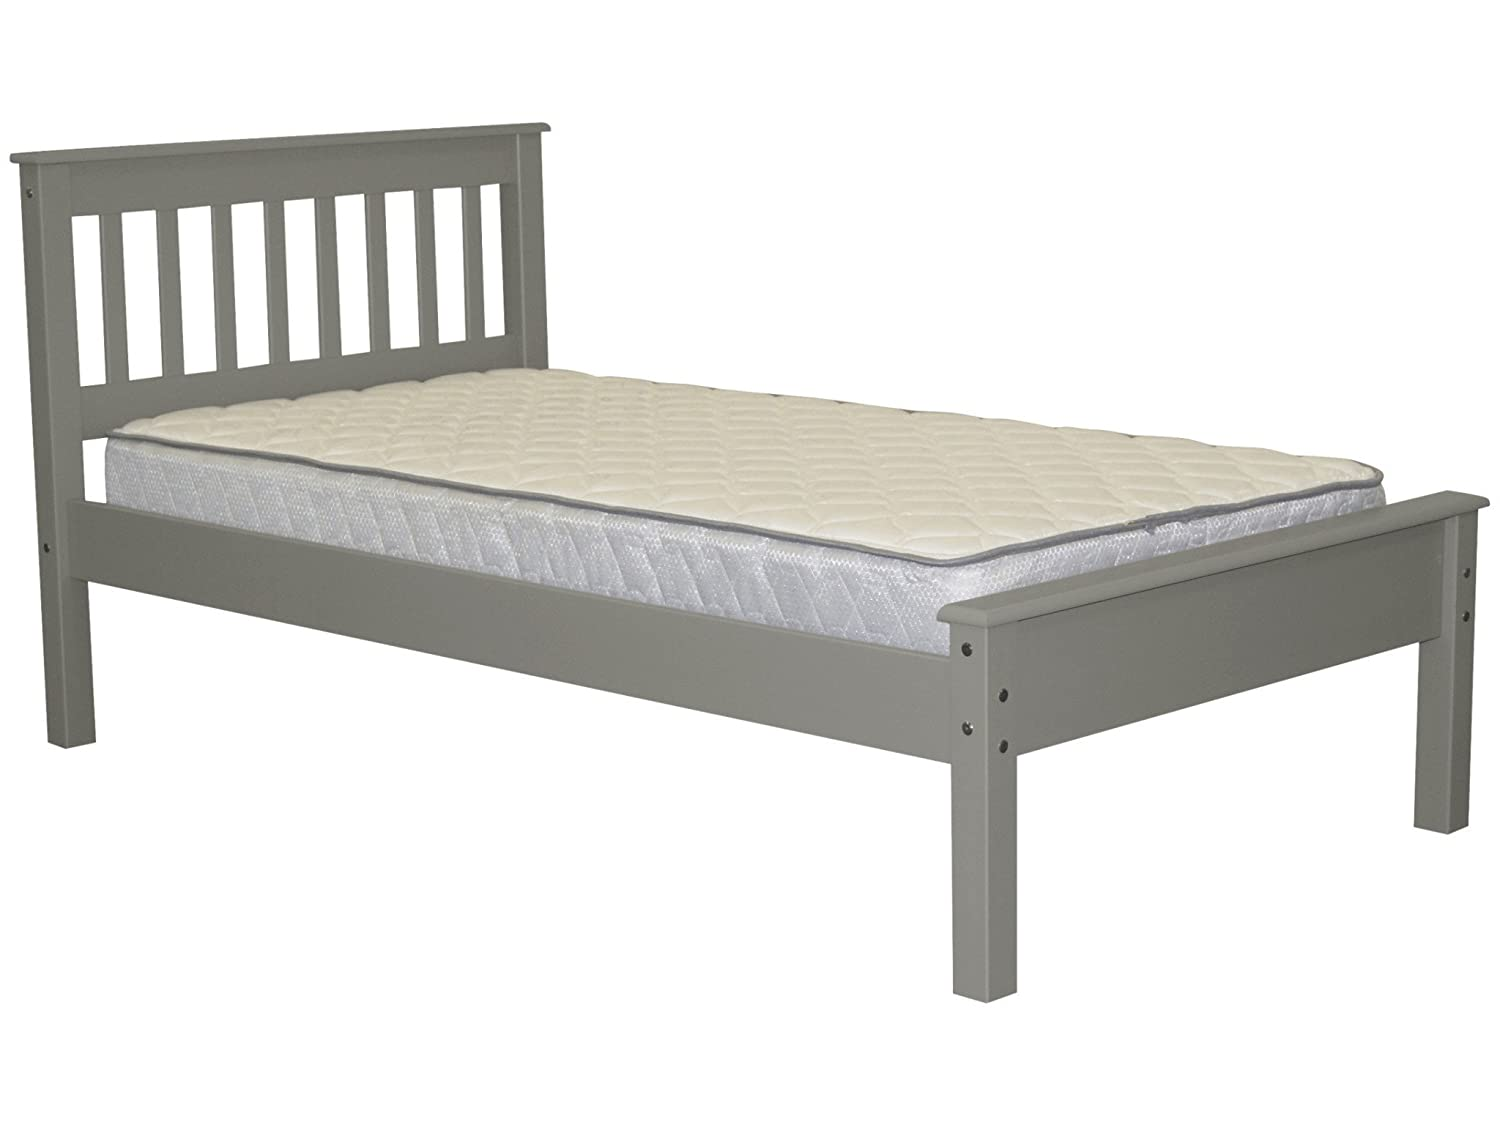 Bedz King Mission Style Twin Bed, Gray